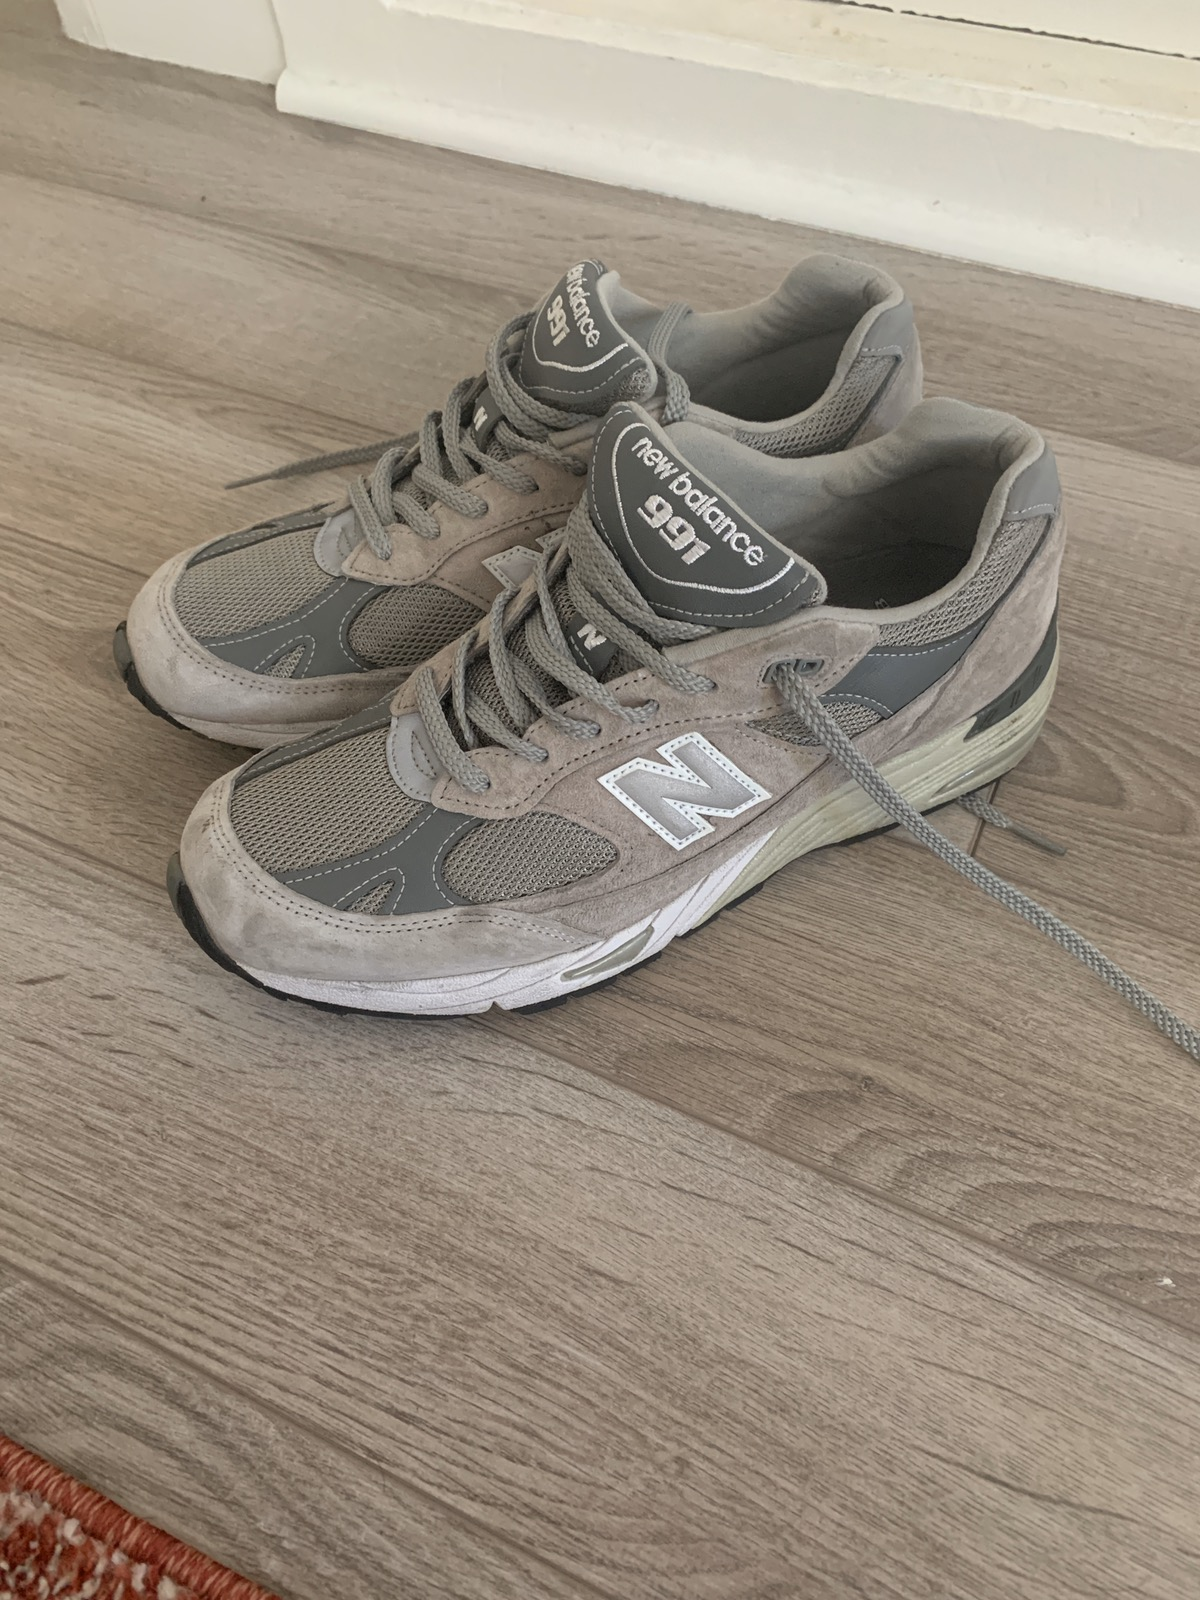 New Balance New Balance 991 Made In Usa Grey Kith Grailed